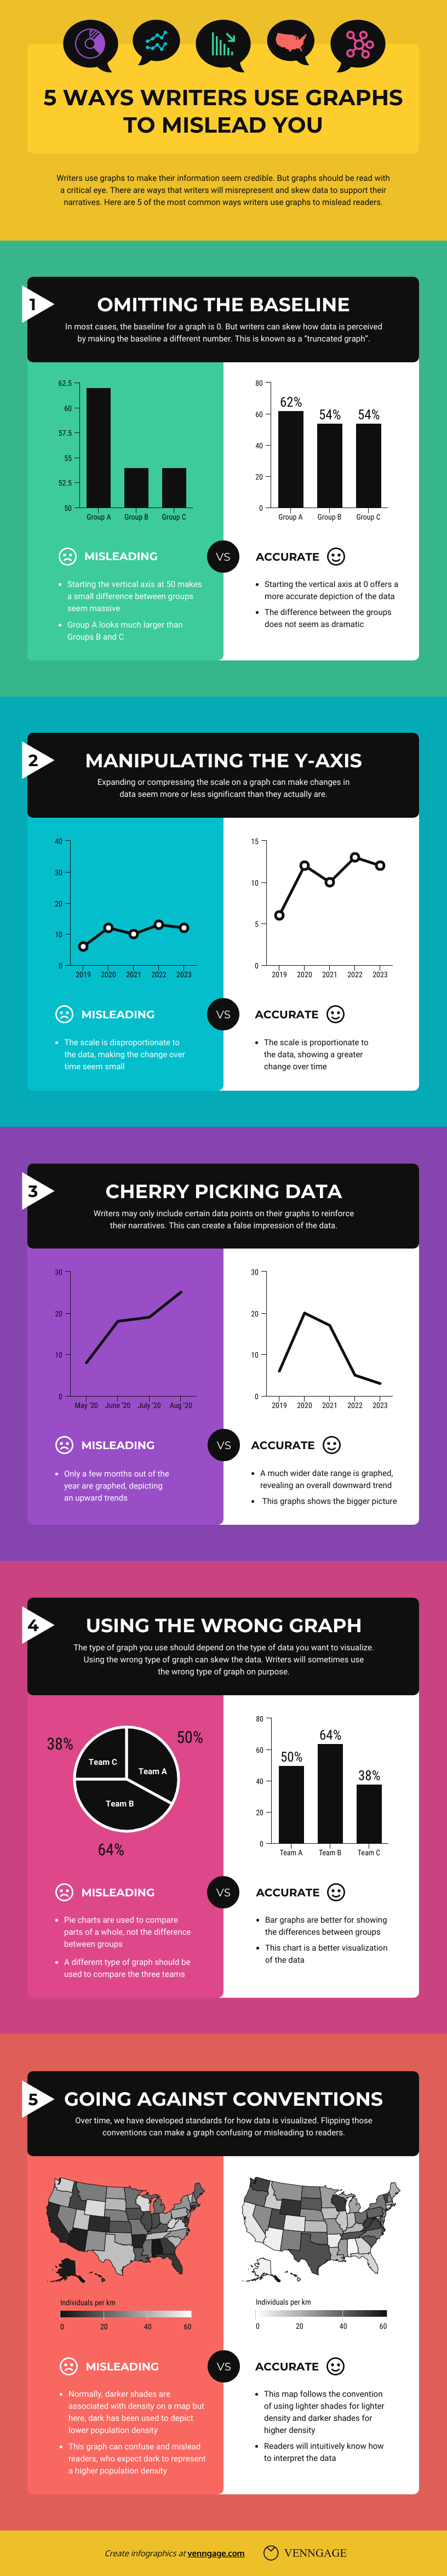 data literacy 5 ways writers use graphs to mislead